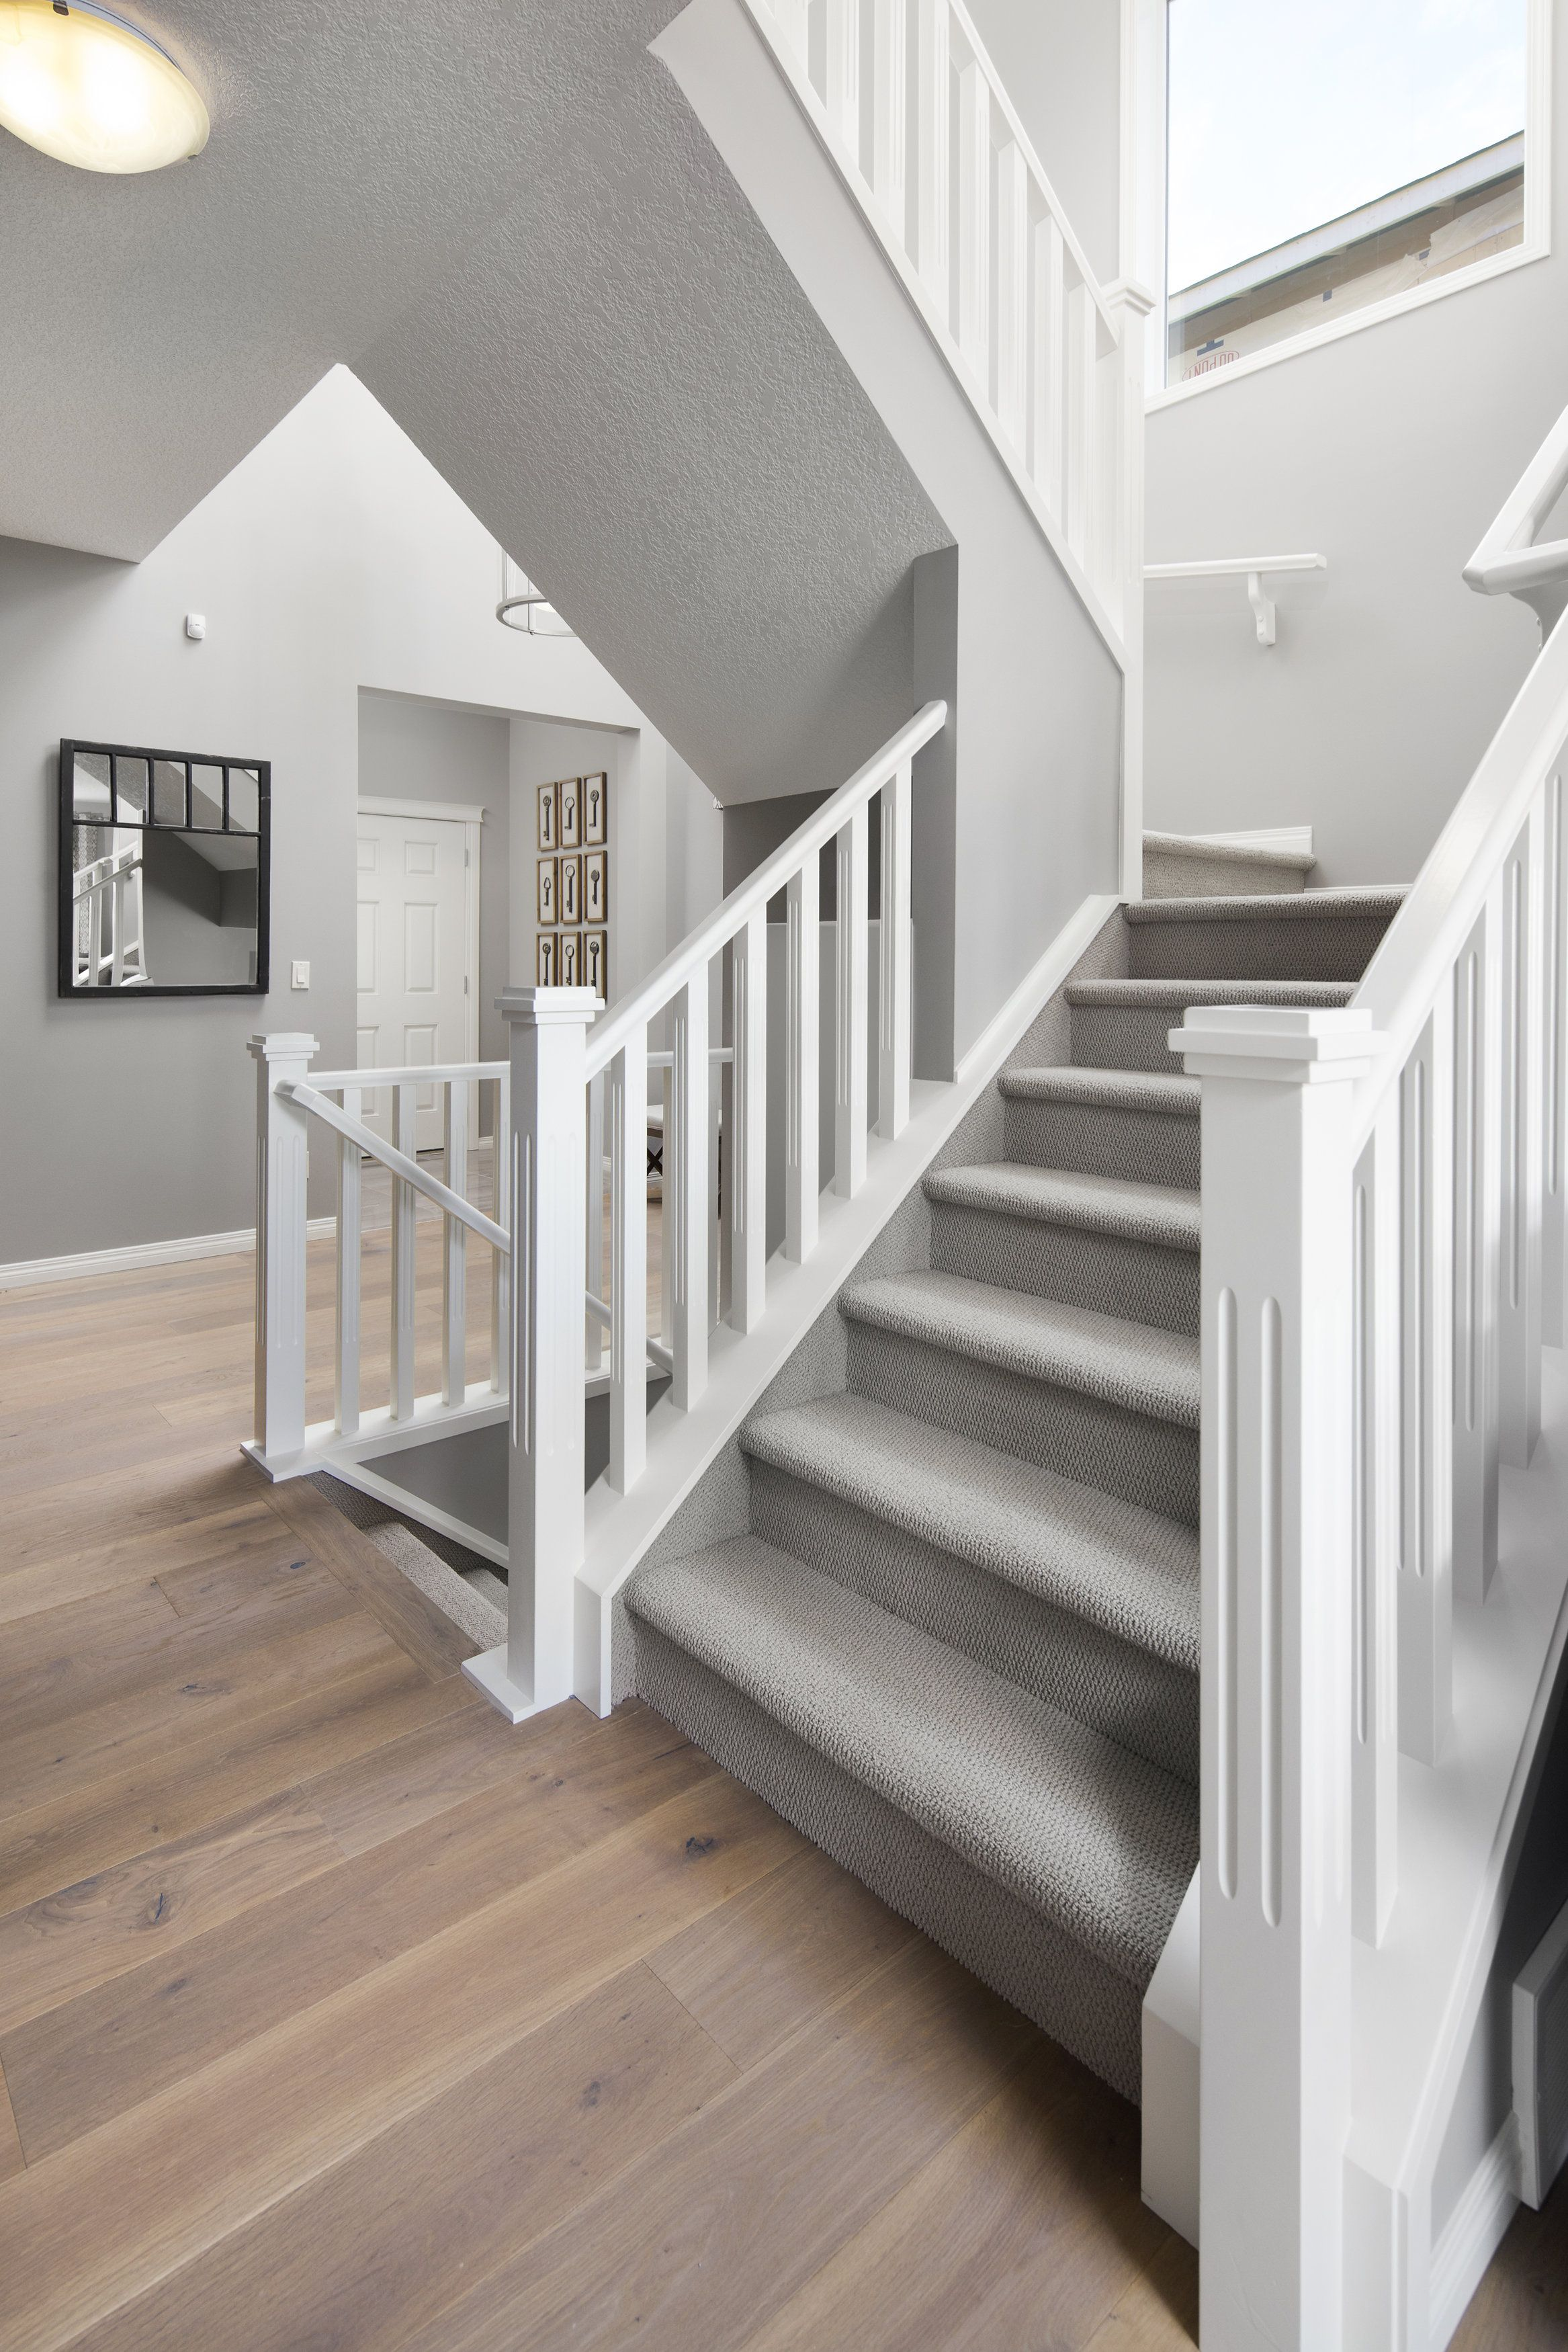 Stairwell in Shane Homes Tofino II Showhome in Redstone in